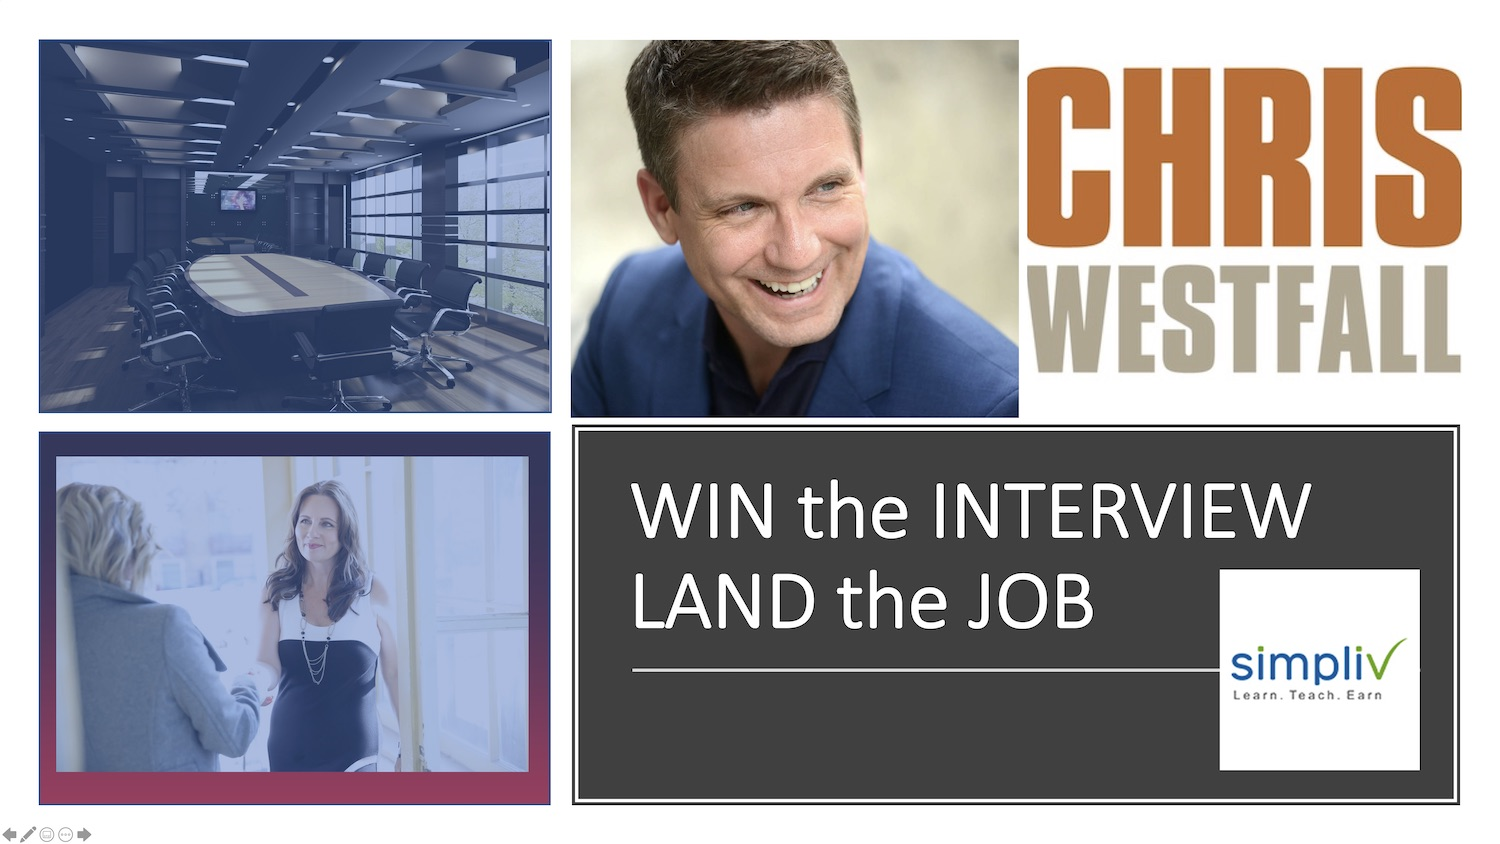 WIN the INTERVIEW, LAND the JOB